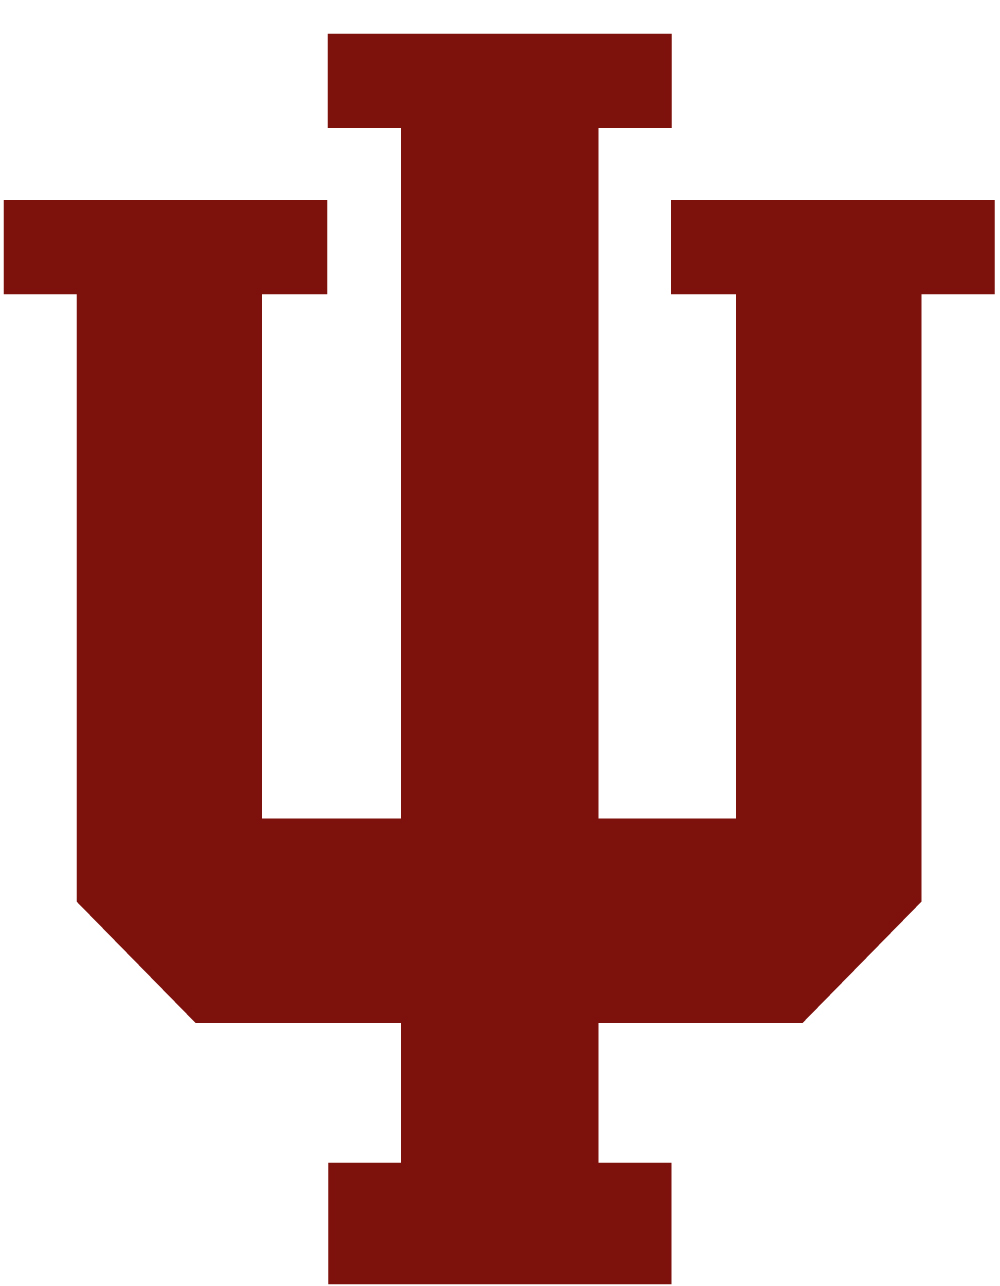 Indiana University in Bloomington logo